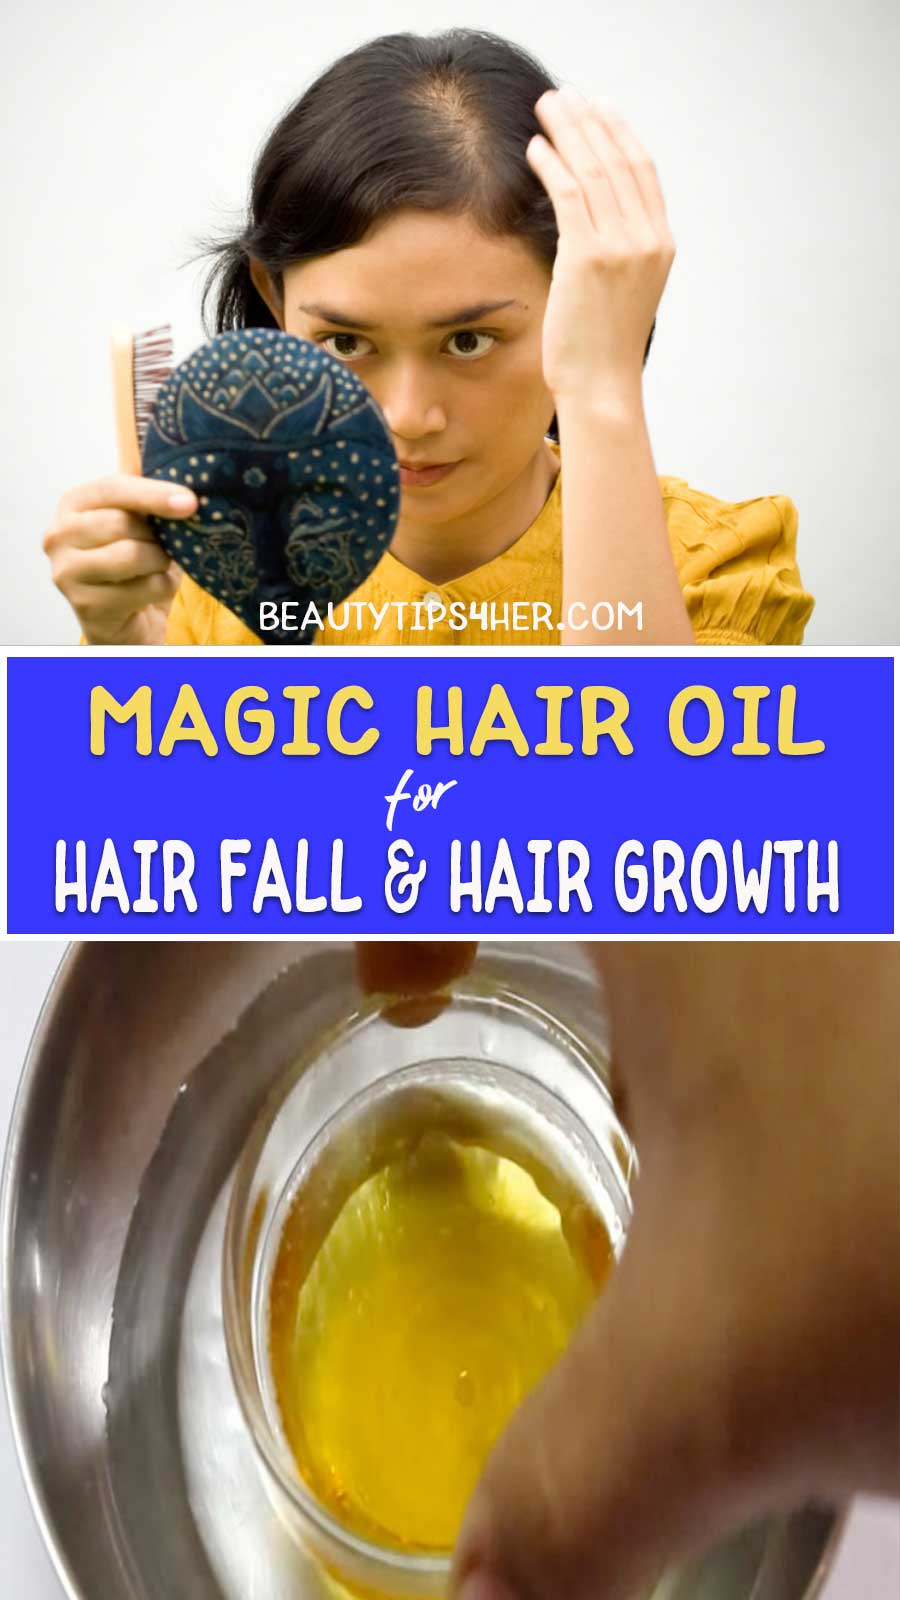 Hair oil for hair fall and hair growth